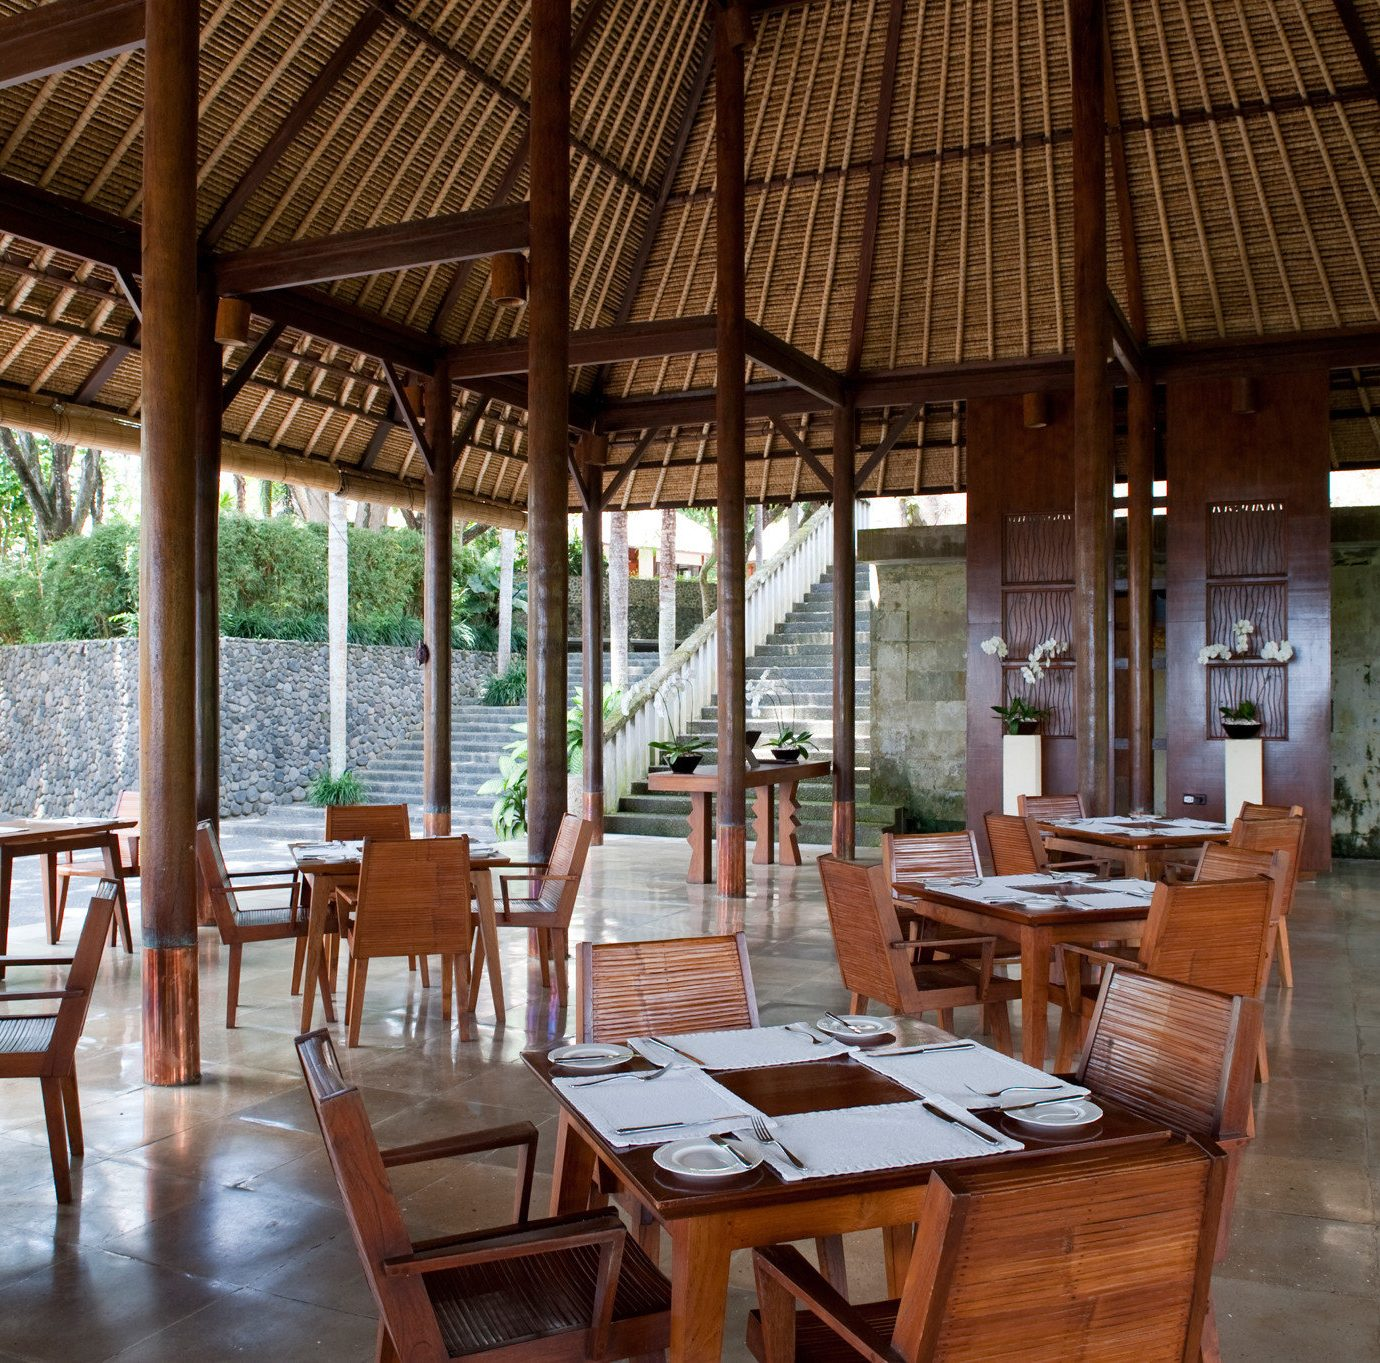 Country Dining Drink Eat Jungle chair property Resort wooden restaurant cottage outdoor structure